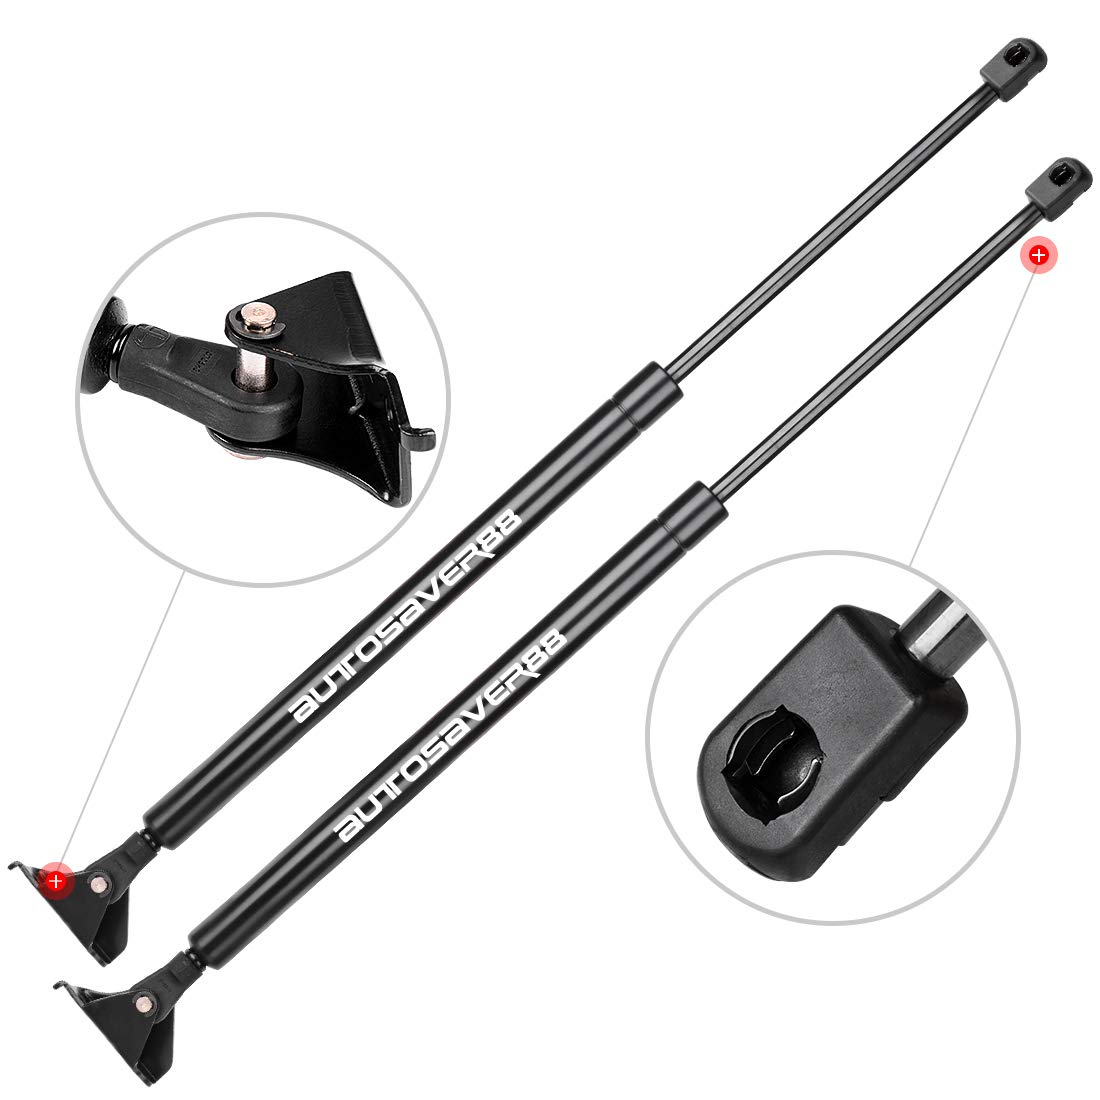 StrongArm 6120 Fits FORD Edge 2007 To 2014 Liftgate Hatch Tailgate Lift Supports 2 Qty